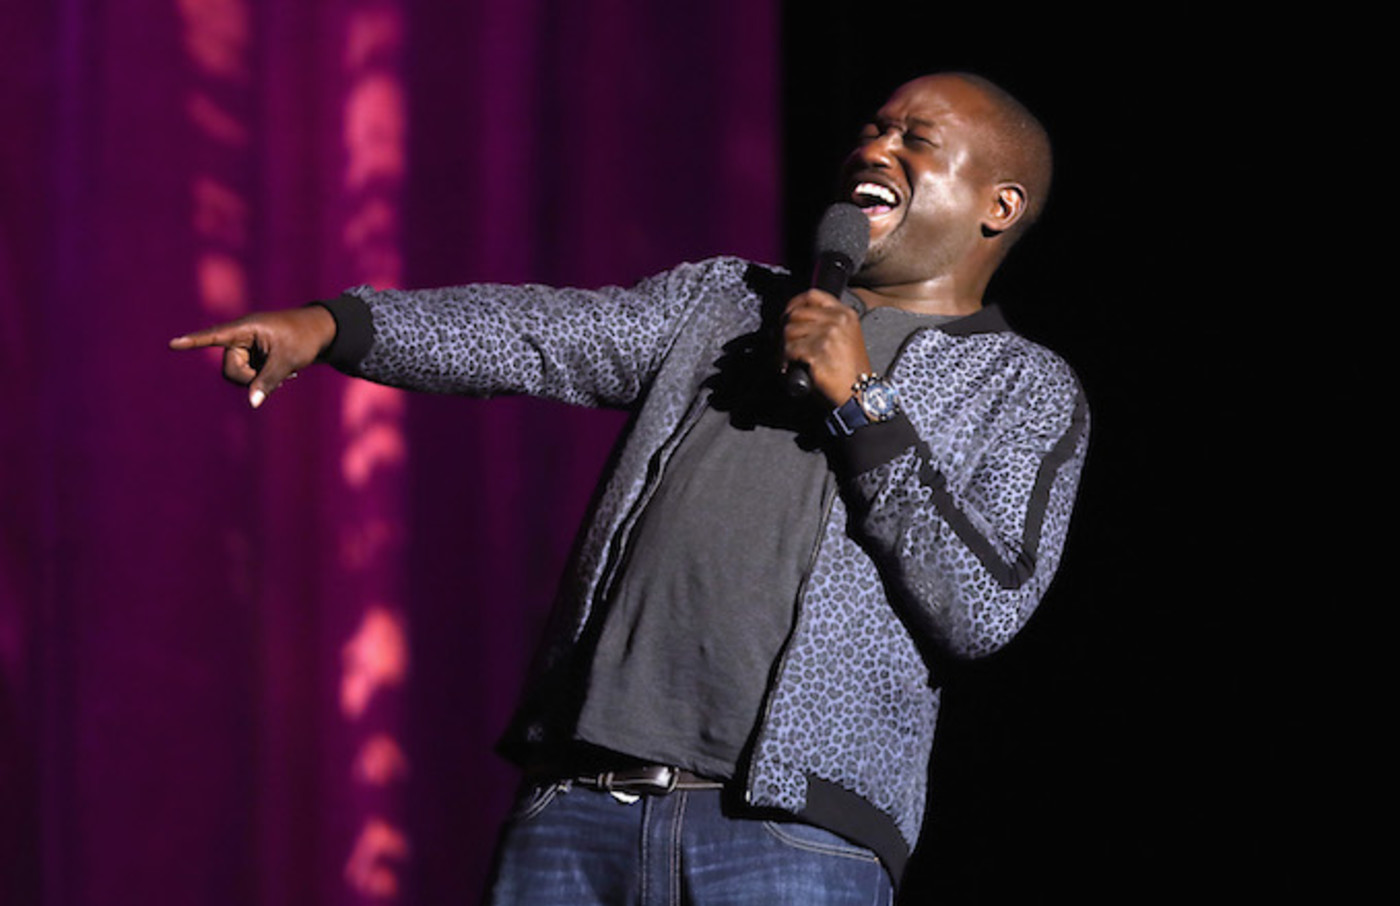 Hannibal Buress performs onstage at the 11th Annual Comedy Celebration.